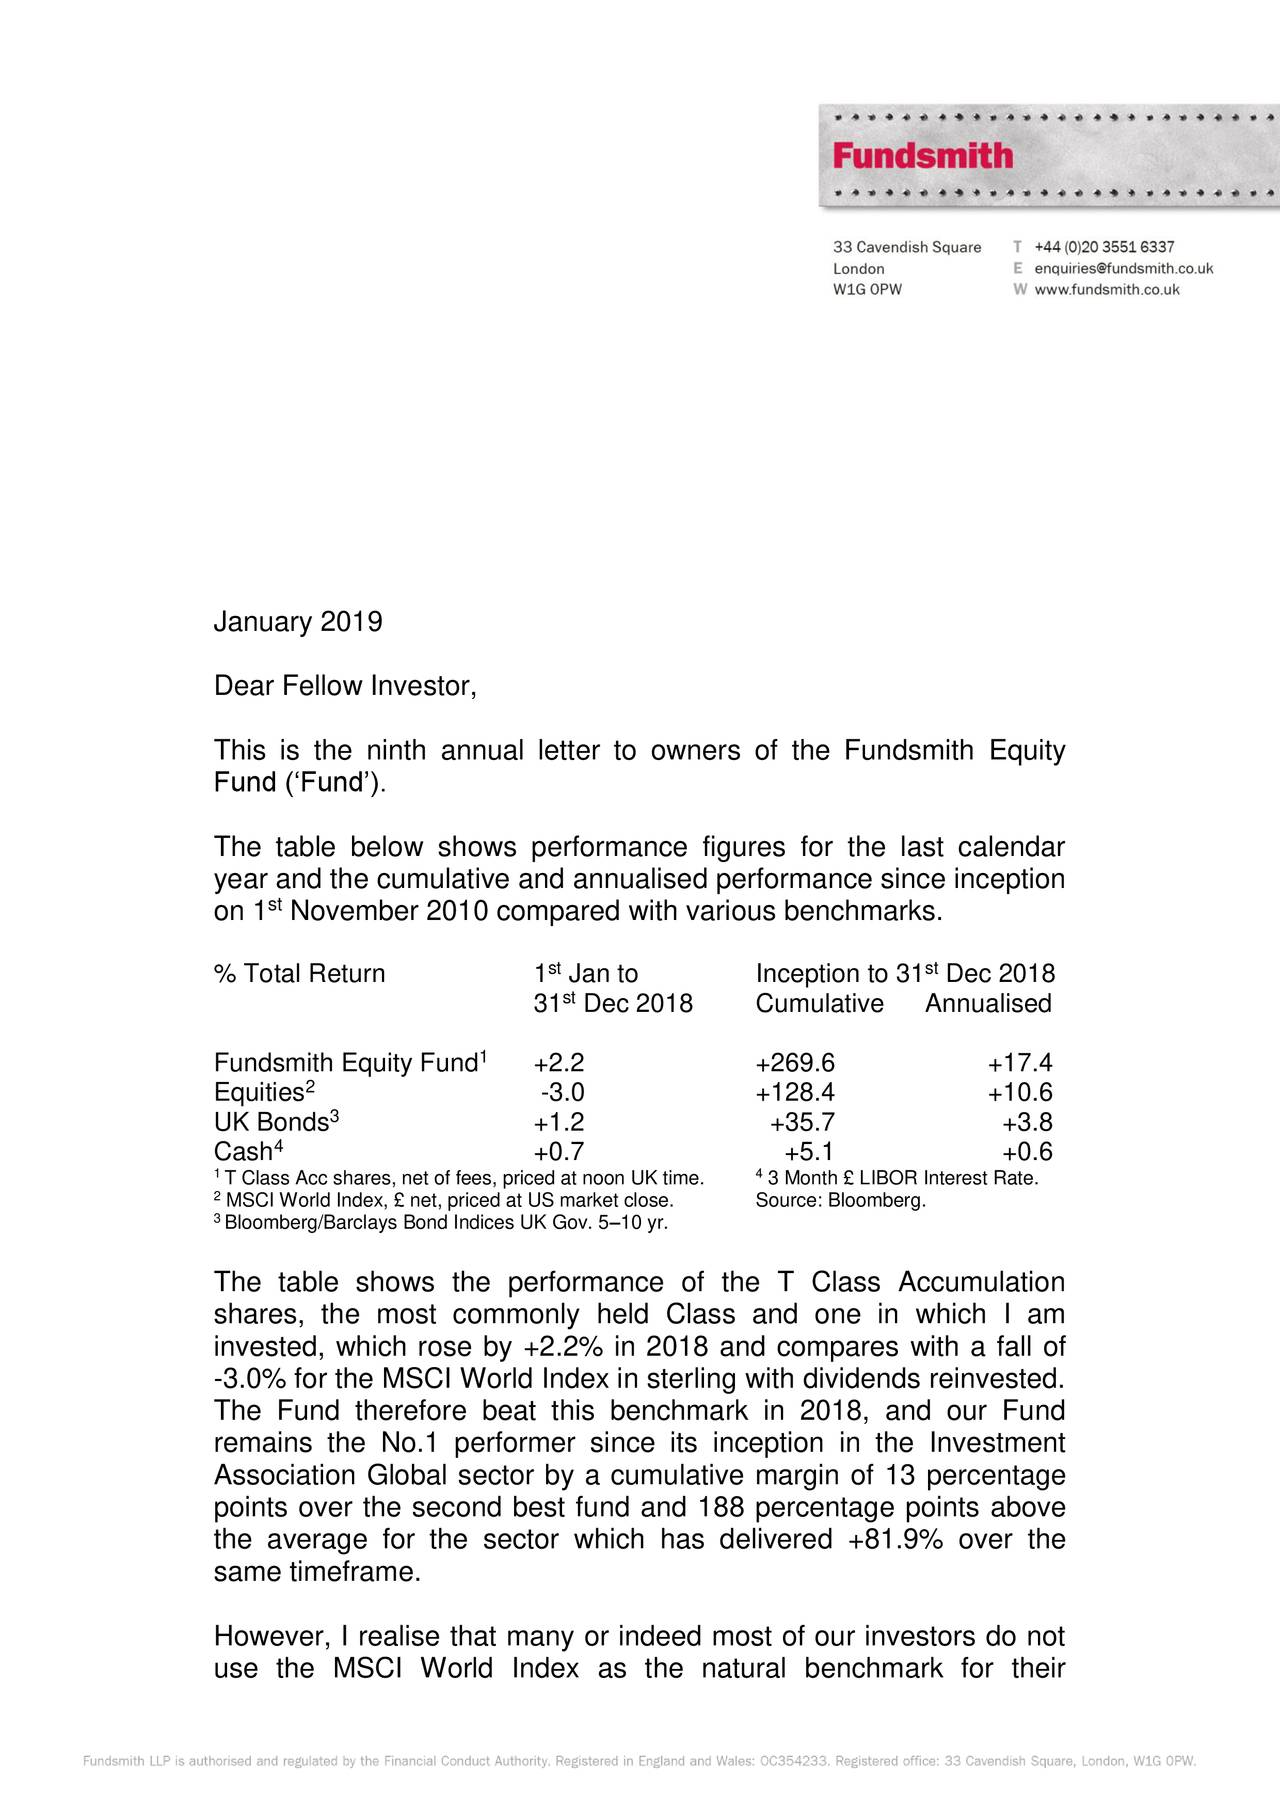 Dear Fellow Investor, This is the ninth annual letter to owners of the Fundsmith Equity Fund ('Fund'). The table below shows performance figures for the last calendar year and the cumulative and annualised performance since inception st on 1 November 2010 compared with various benchmarks. % Total Return 1 Jan to Inception to 31 Dec 2018 st 31 Dec 2018 Cumulative Annualised Fundsmith Equity Fund 1 +2.2 +269.6 +17.4 Equities2 -3.0 +128.4 +10.6 3 UK Bonds +1.2 +35.7 +3.8 Cash 4 +0.7 +5.1 +0.6 1T Class Acc shares, net of fees, priced at noon 3 Month £ LIBOR Interest Rate. 2MSCI World Index, £ net, priced at US market clSource: Bloomberg. 3Bloomberg/Barclays Bond Indices UK Gov. 5–10 yr. The table shows the performance of the T Class Accumulation shares, the most commonly held Class and one in which I am invested, which rose by +2.2% in 2018 and compares with a fall of -3.0% for the MSCI World Index in sterling with dividends reinvested. The Fund therefore beat this benchmark in 2018, and our Fund remains the No.1 performer since its inception in the Investment Association Global sector by a cumulative margin of 13 percentage points over the second best fund and 188 percentage points above the average for the sector which has delivered +81.9% over the same timeframe. However, I realise that many or indeed most of our investors do not use the MSCI World Index as the natural benchmark for their